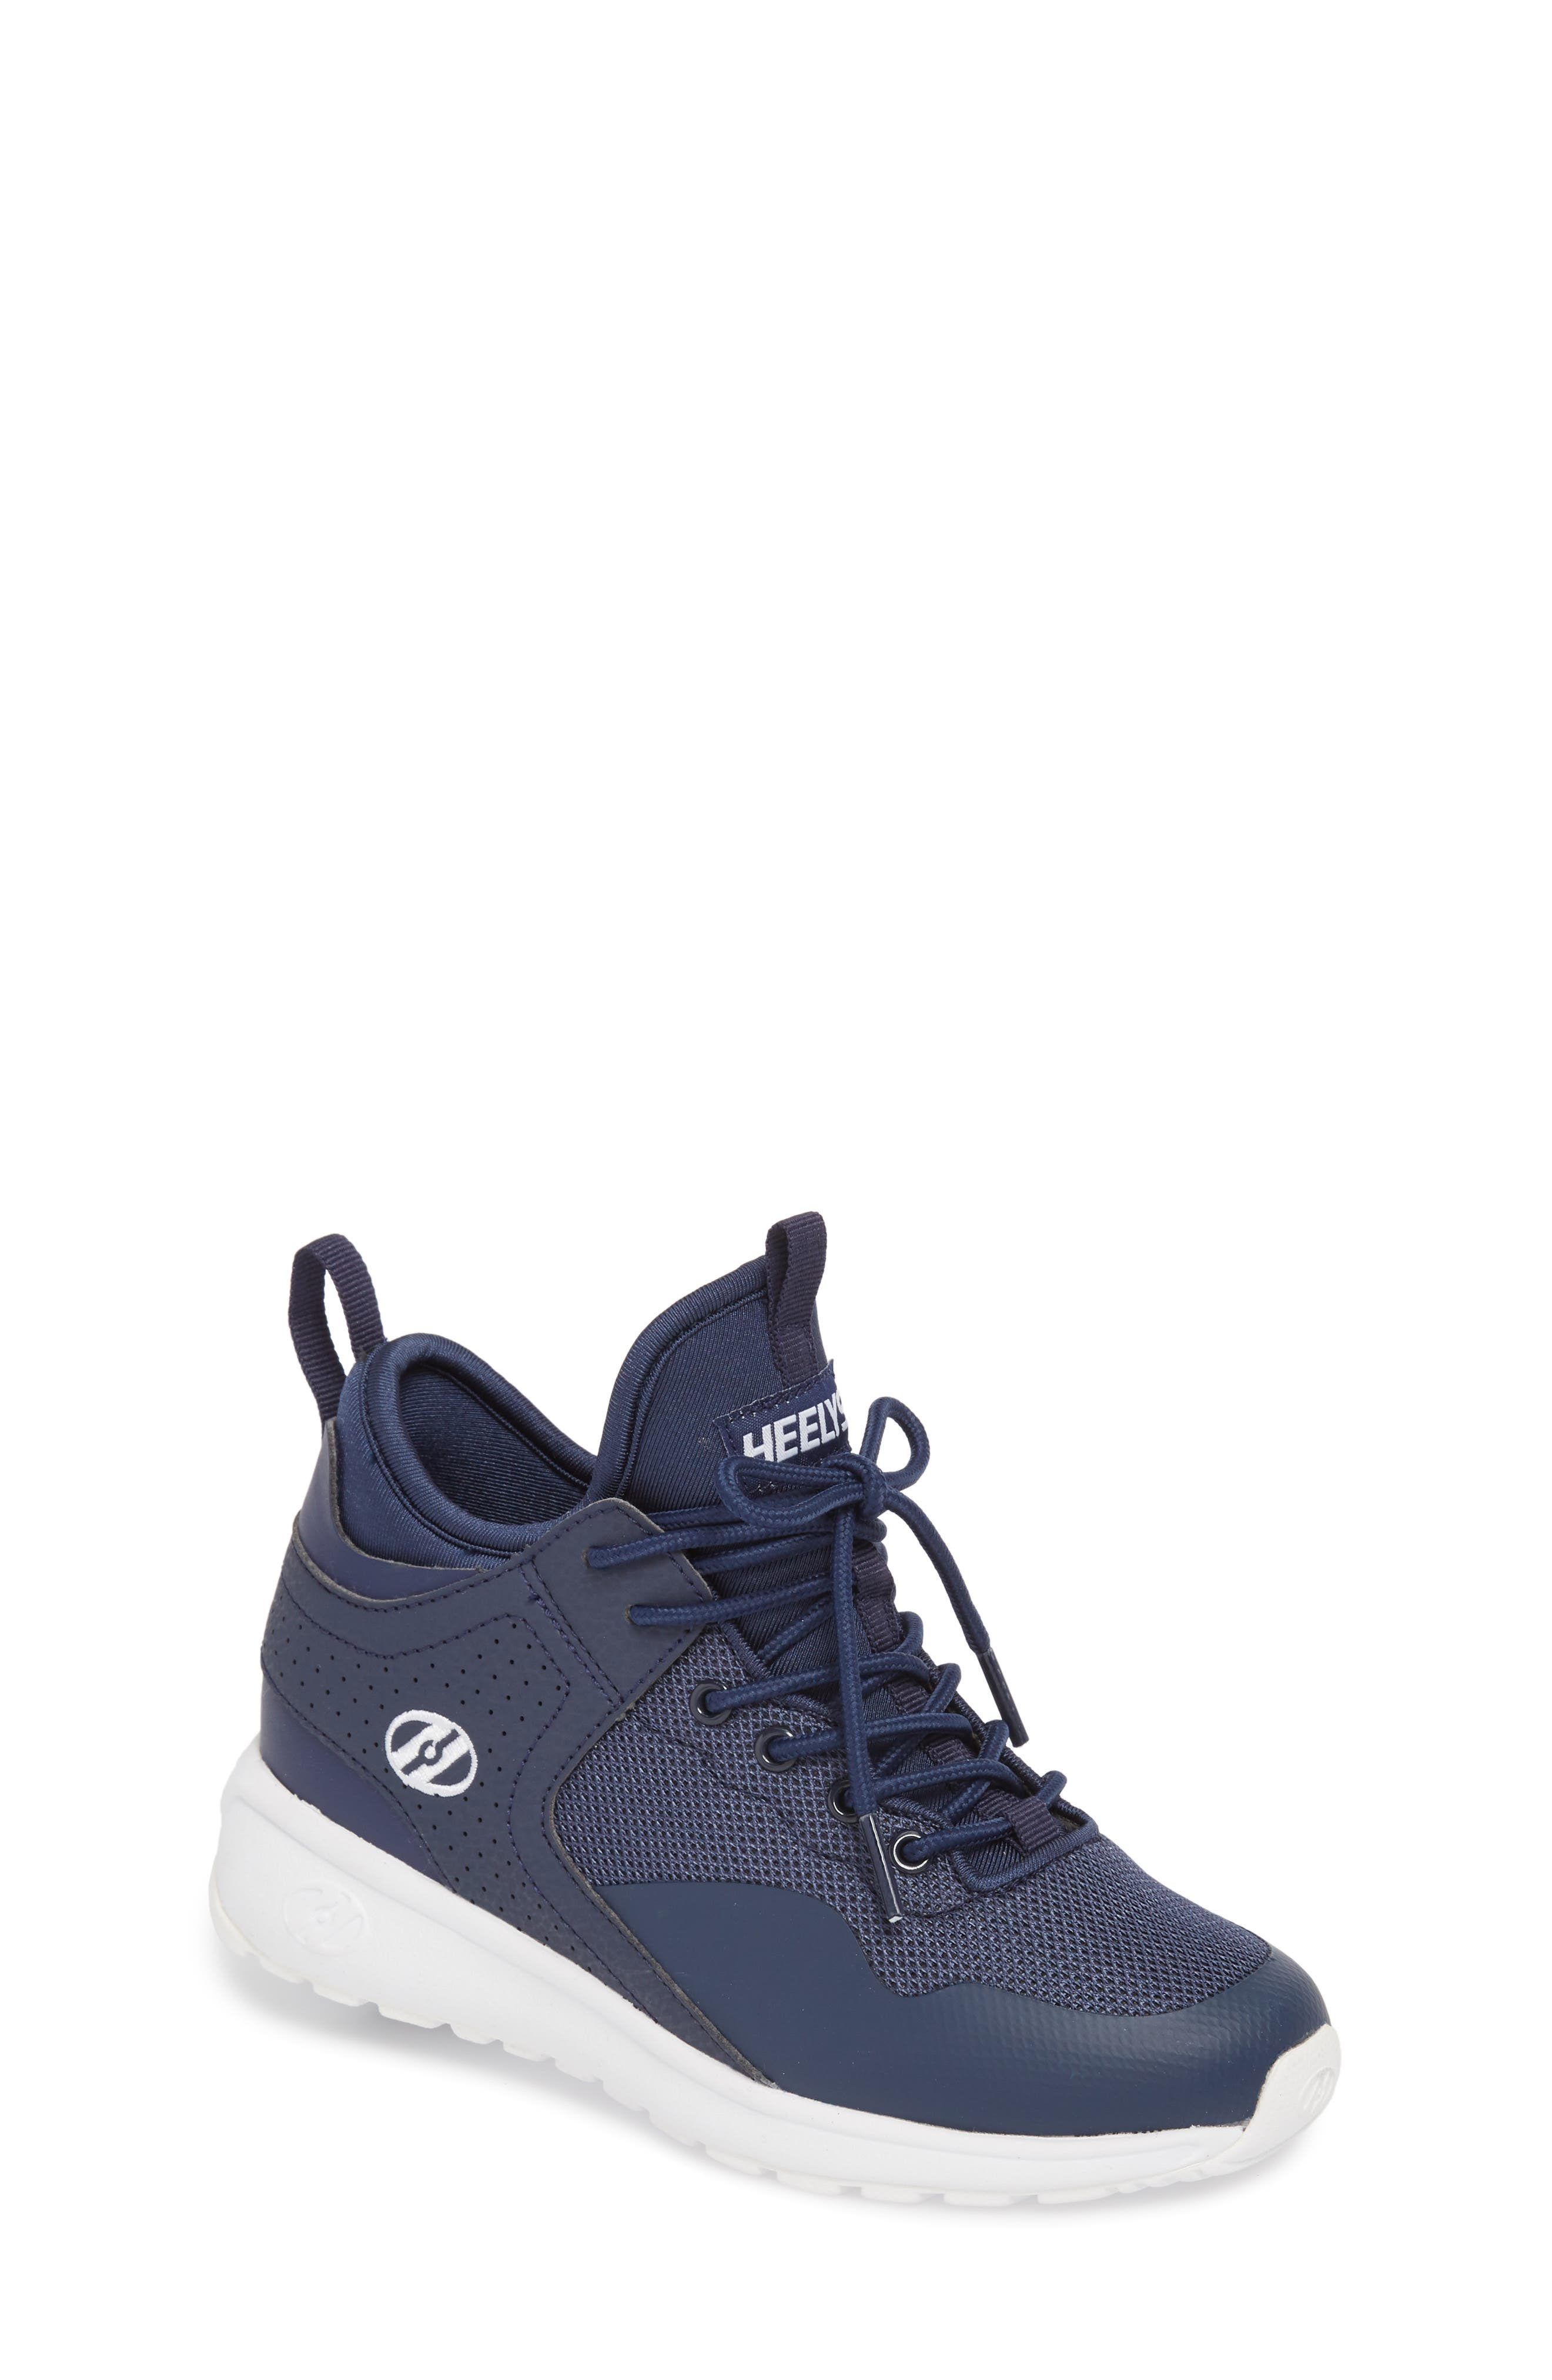 Piper Sneaker,                         Main,                         color, Navy/ White